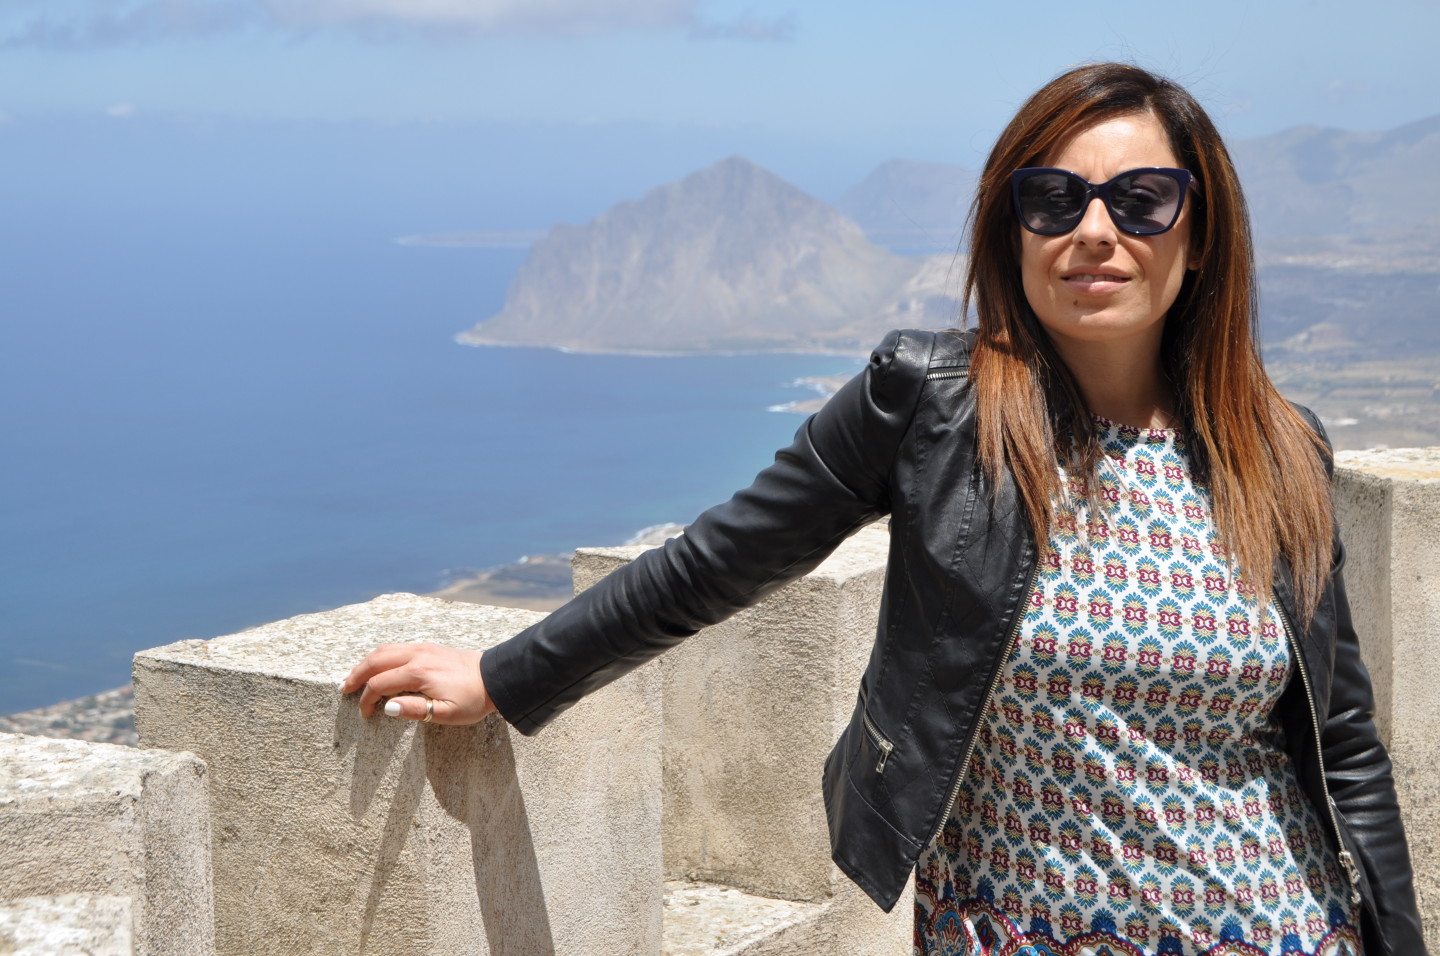 travel-erice-sicily-valentina-coco-outfit-fashion-blogger